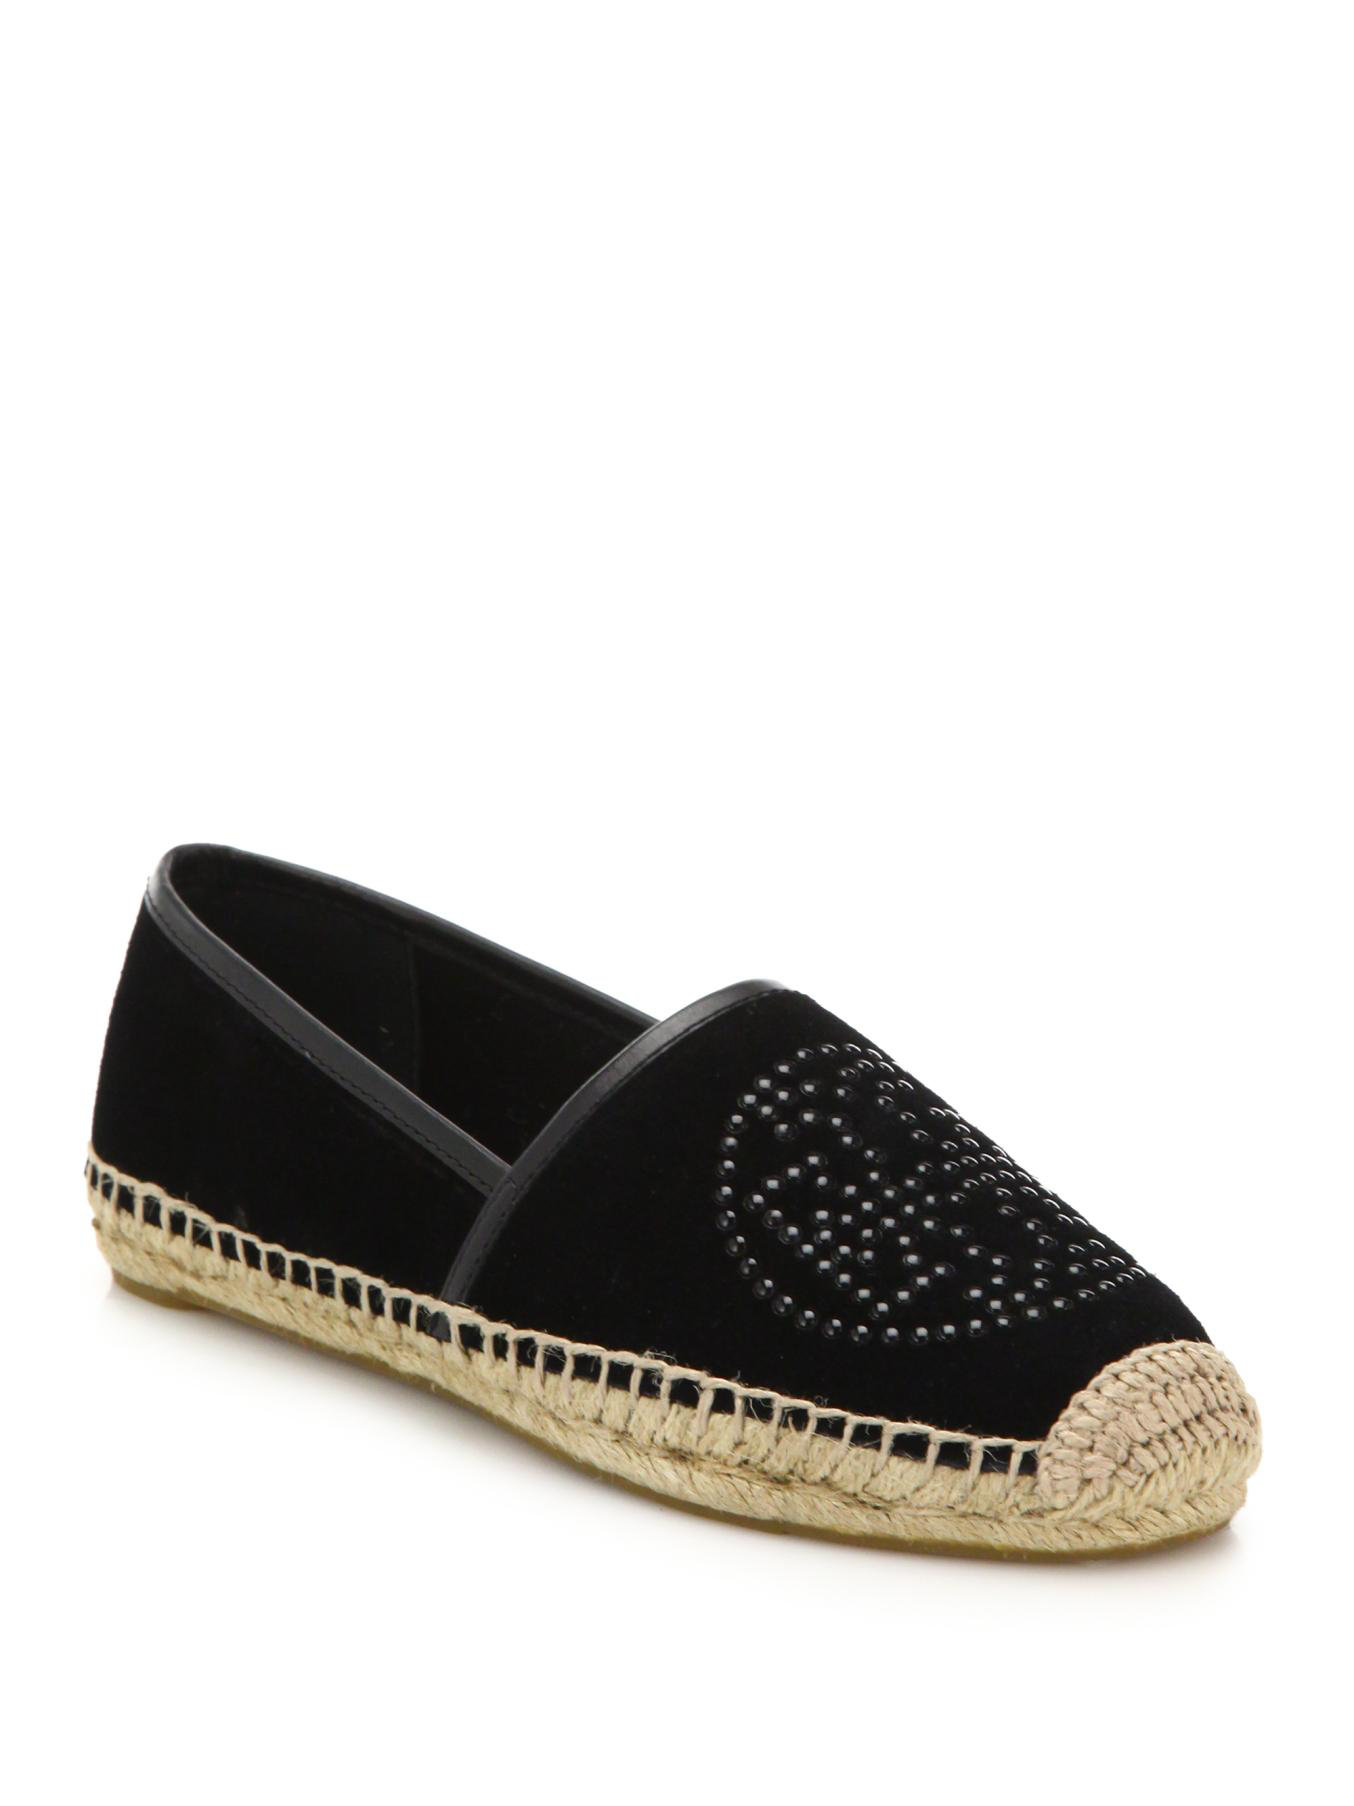 7209993ab5b6 ... discount code for lyst tory burch kirby suede espadrille flats in black  07dd8 2e79f